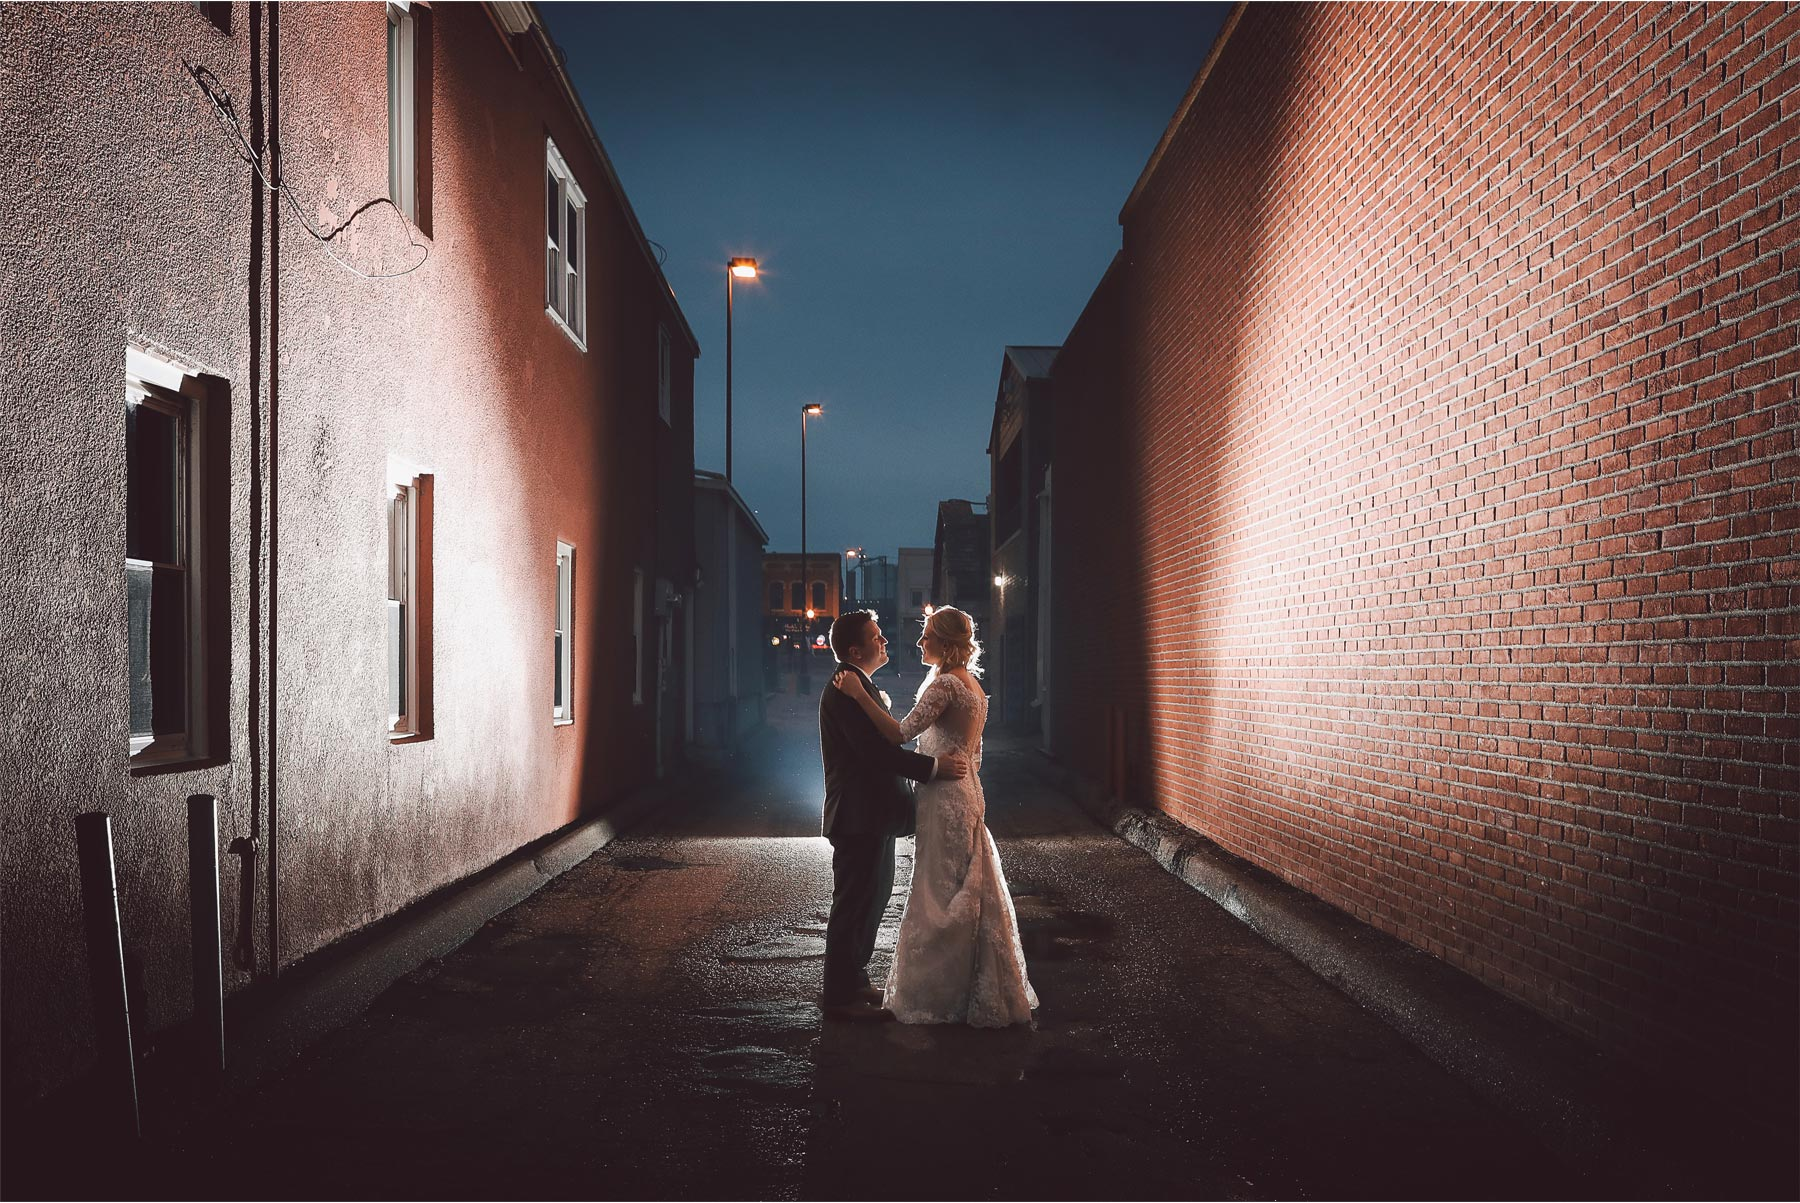 19-Shakopee-Minnesota-Wedding-Photography-by-Vick-Photography-Turtles-1890-Social-Centre-Night-Photography-Amber-and-Justin.jpg